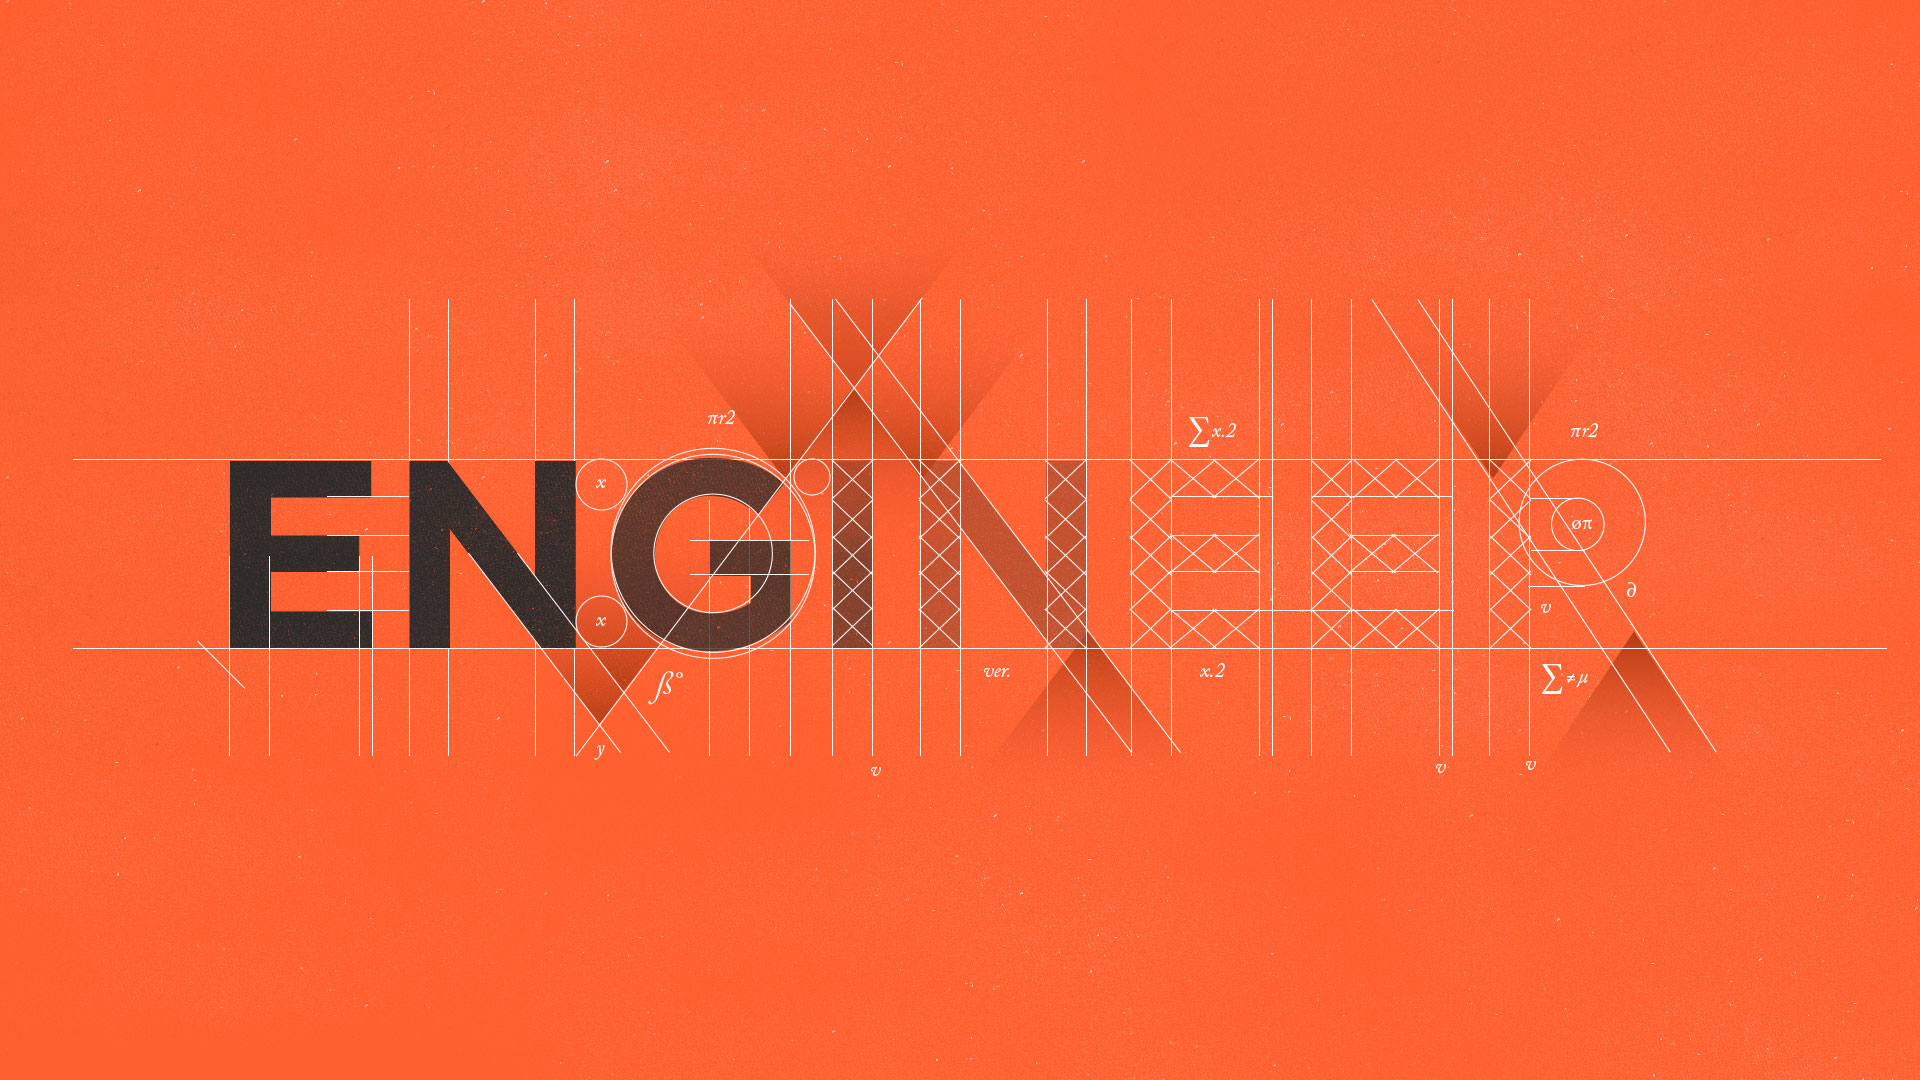 Engineering_OrangePressed